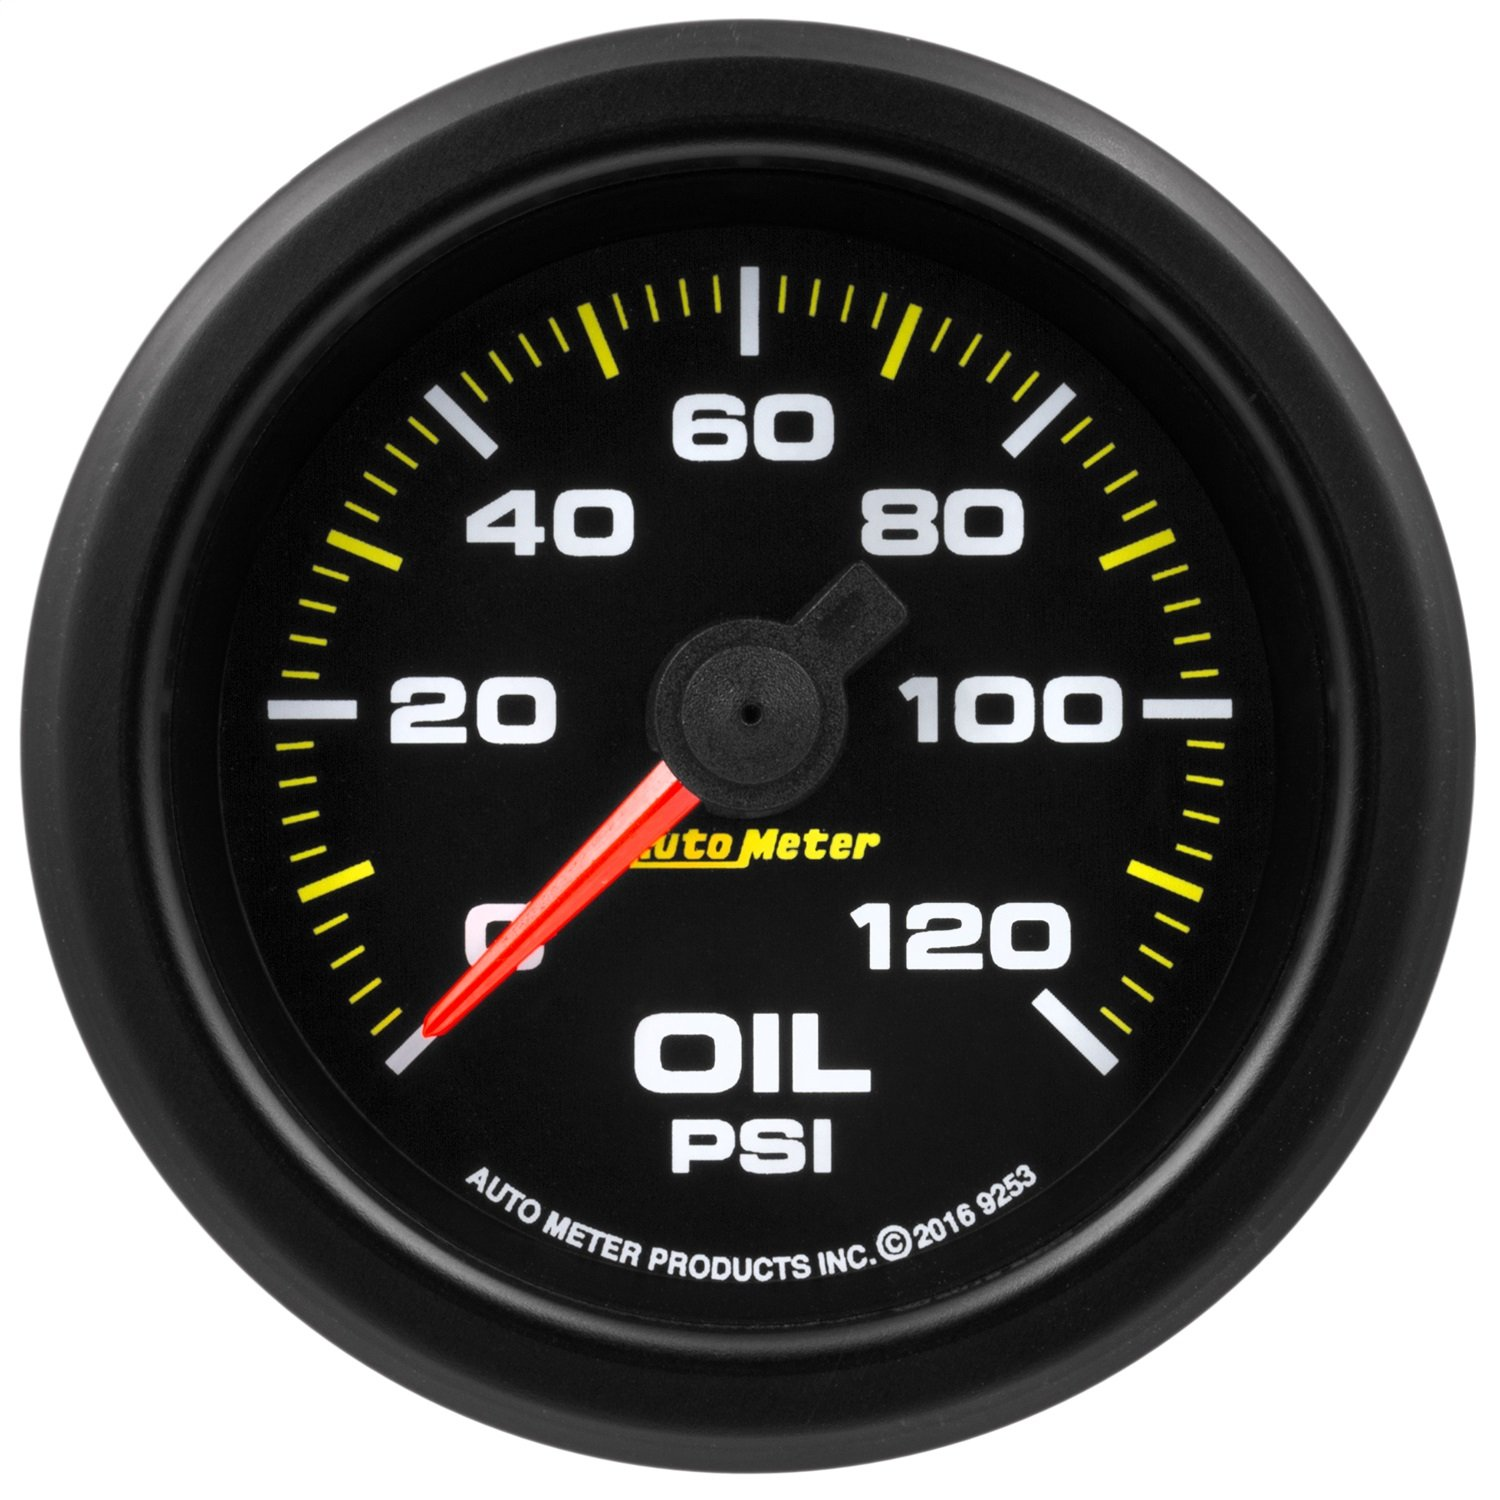 AutoMeter 9253 Extreme Environment Oil Pressure Gauge 2-1/16 in. 0-120 Psi Black Dial Face Fluorescent Red Pointer Black Bezel White LED Lighting w/Peak And Warn Extreme Environment Oil Pressure Gauge